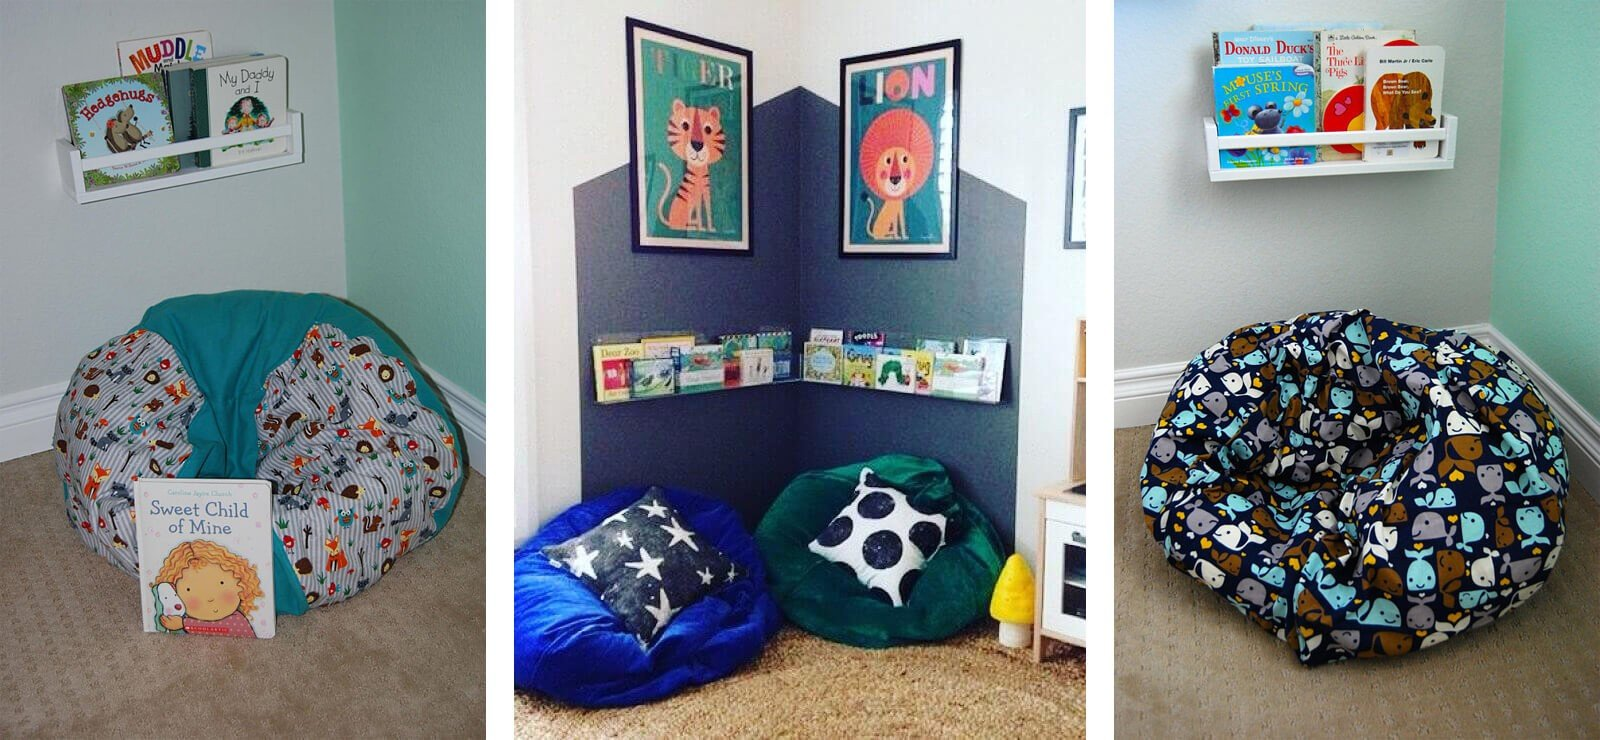 bean bag reading nook ideas for kids